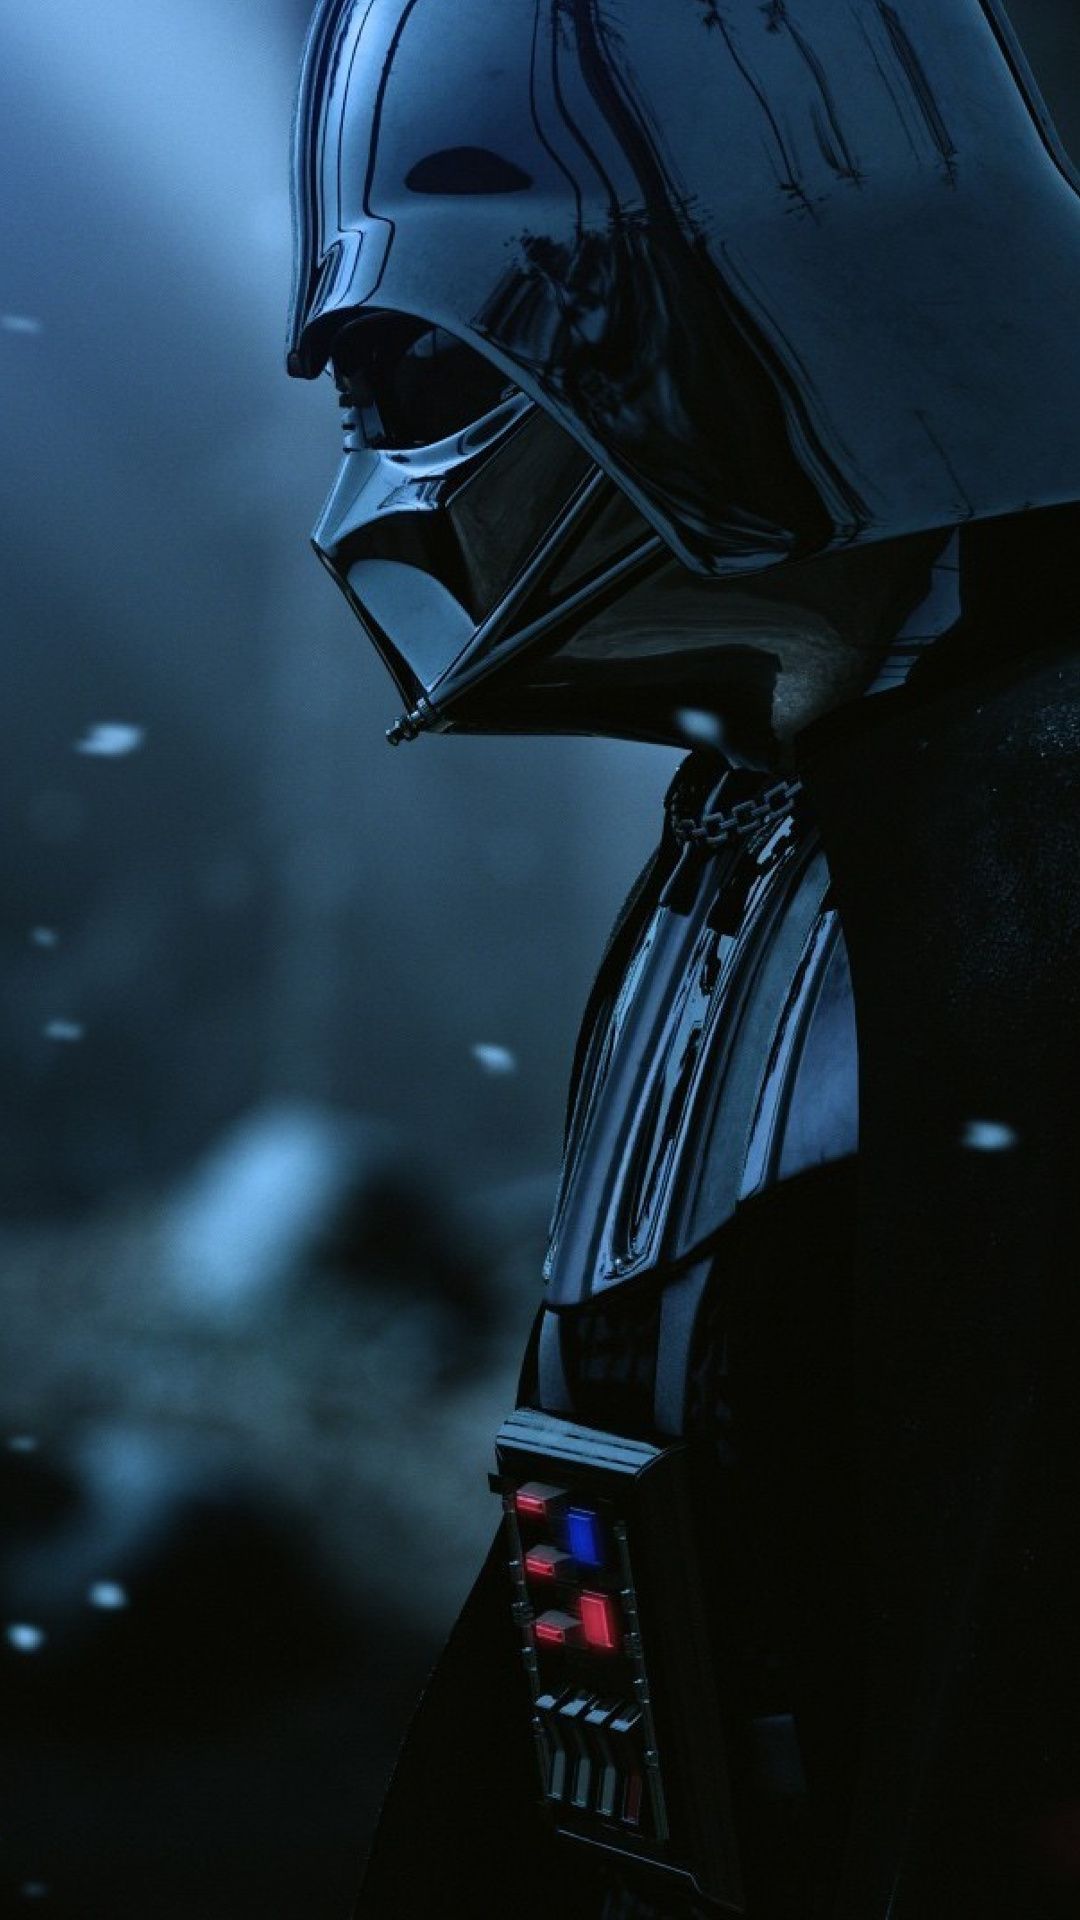 Darth Vader Rogue One Wallpaper Download In 2020 Star Wars Wallpaper Star Wars Poster Star Wars Images